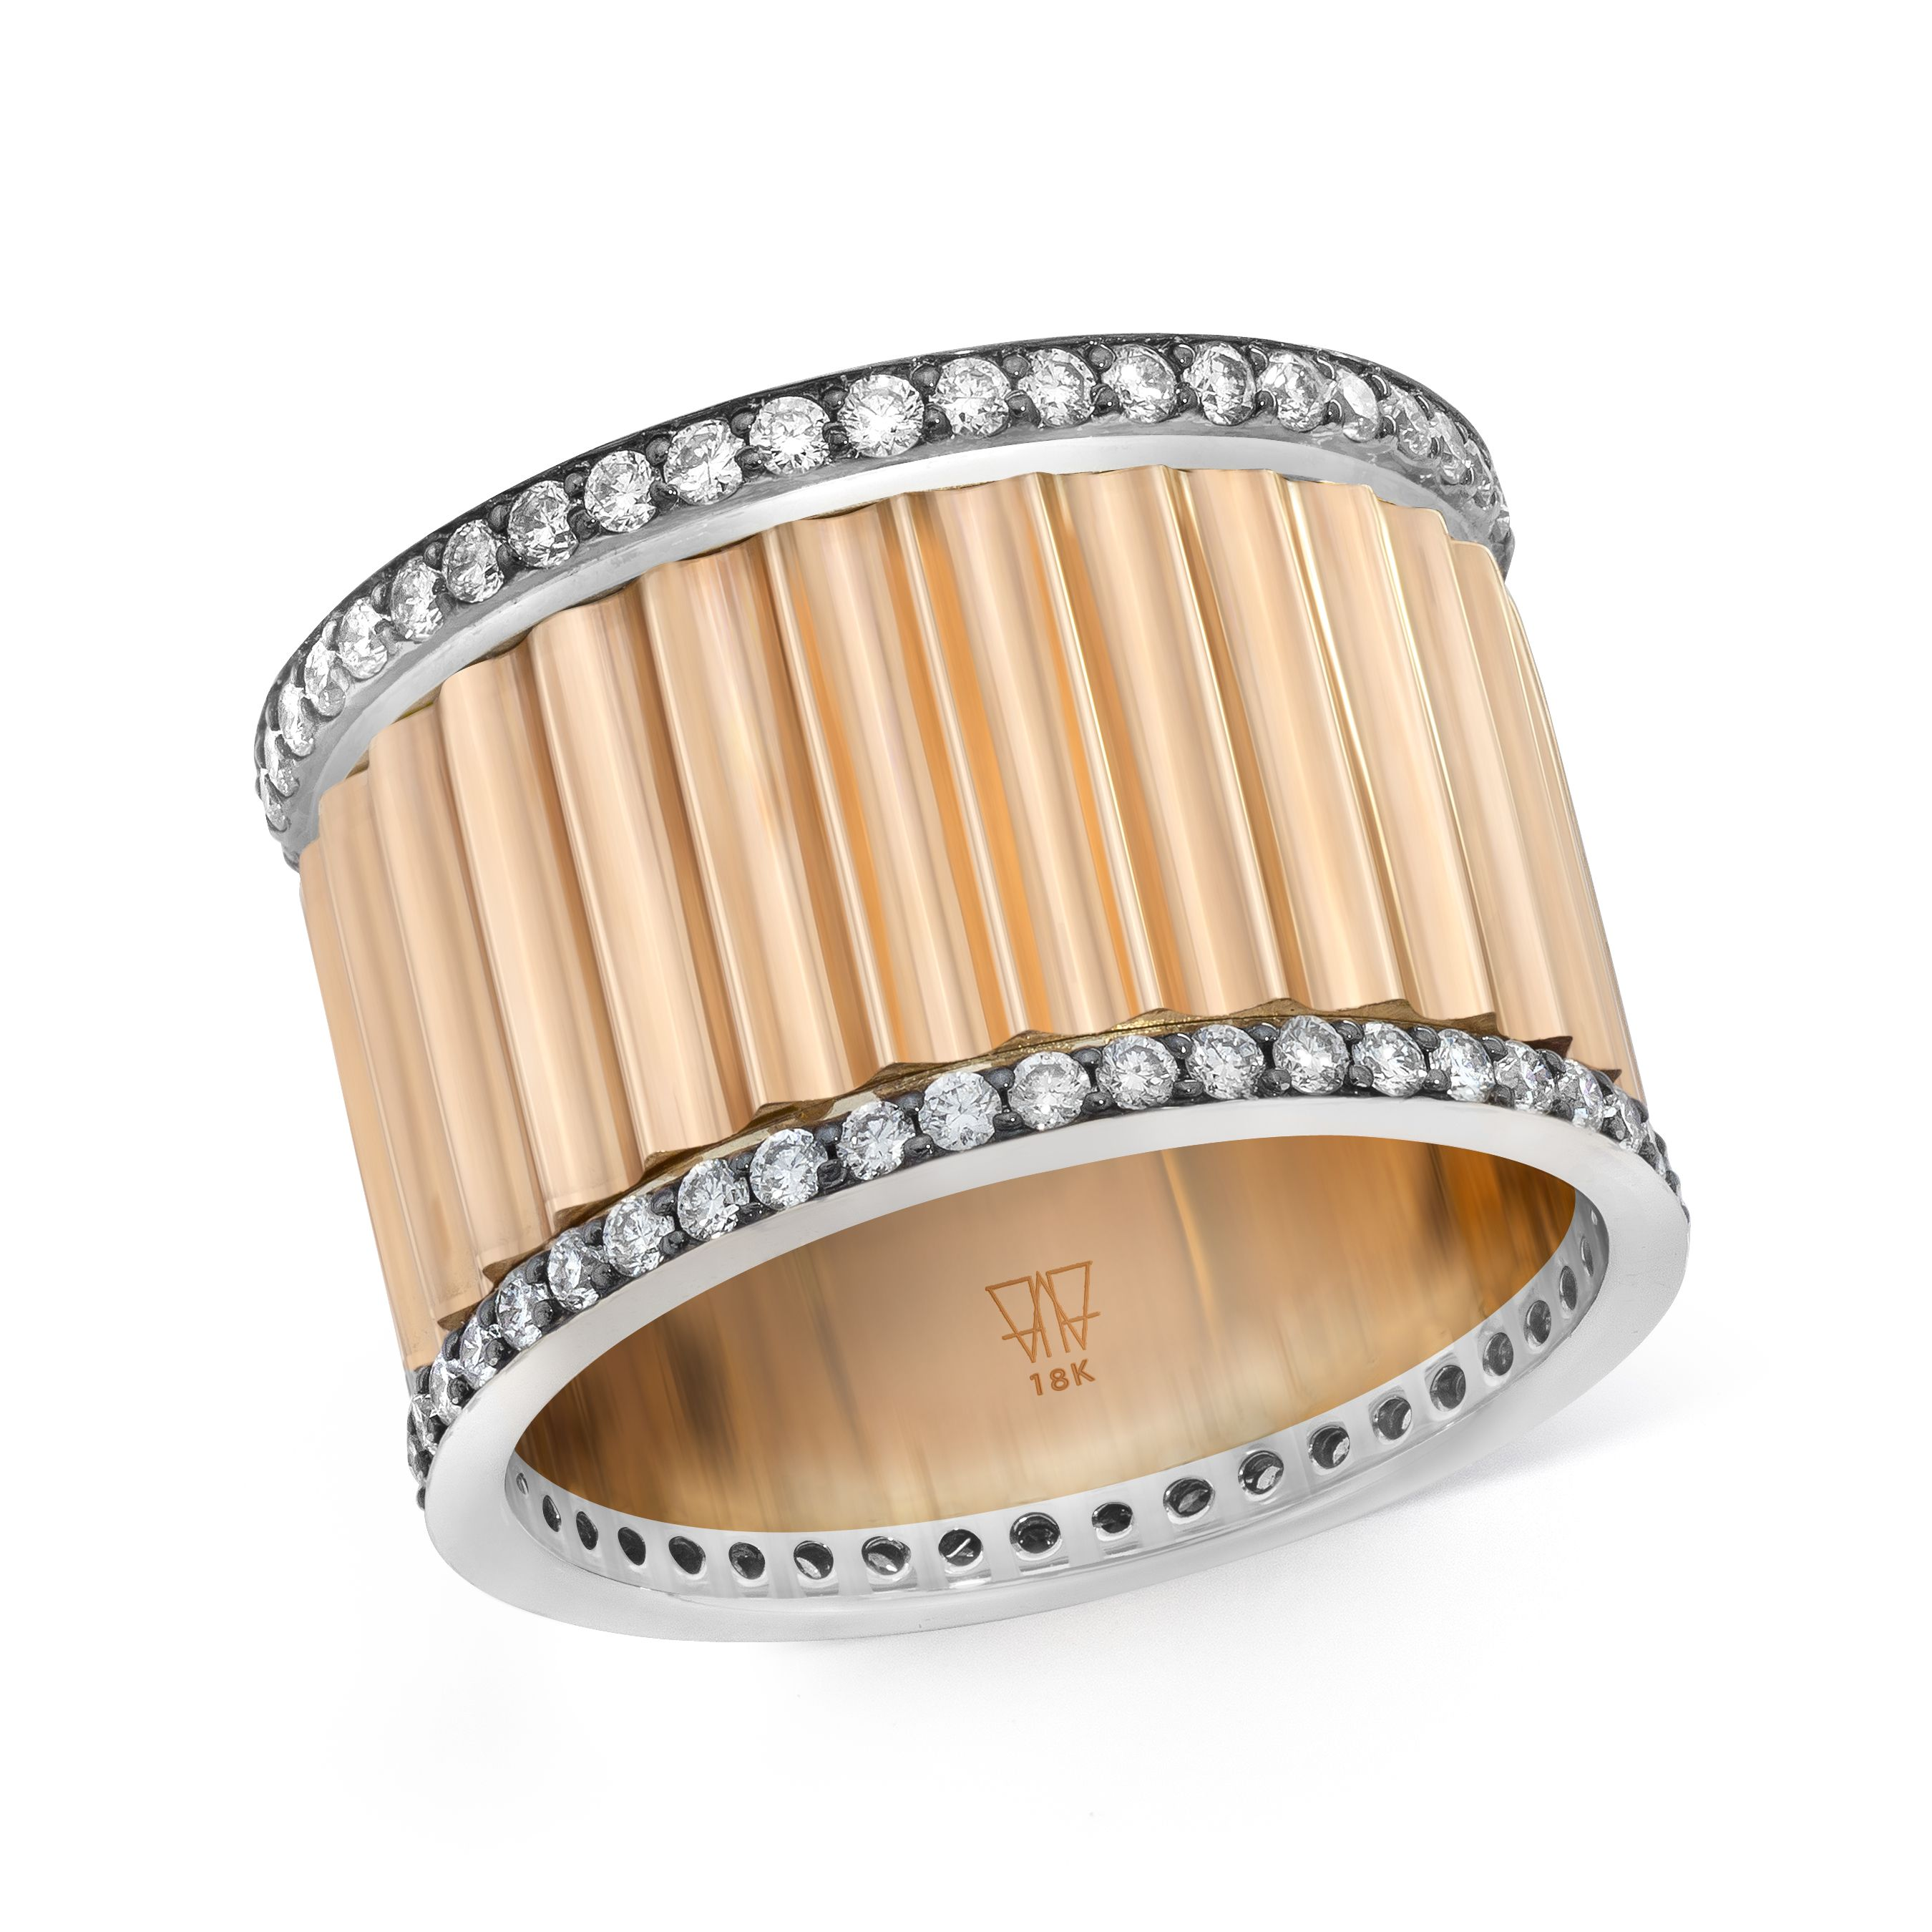 CLIVE 18K Rose Gold, 18K White Gold, Black Rhodium and